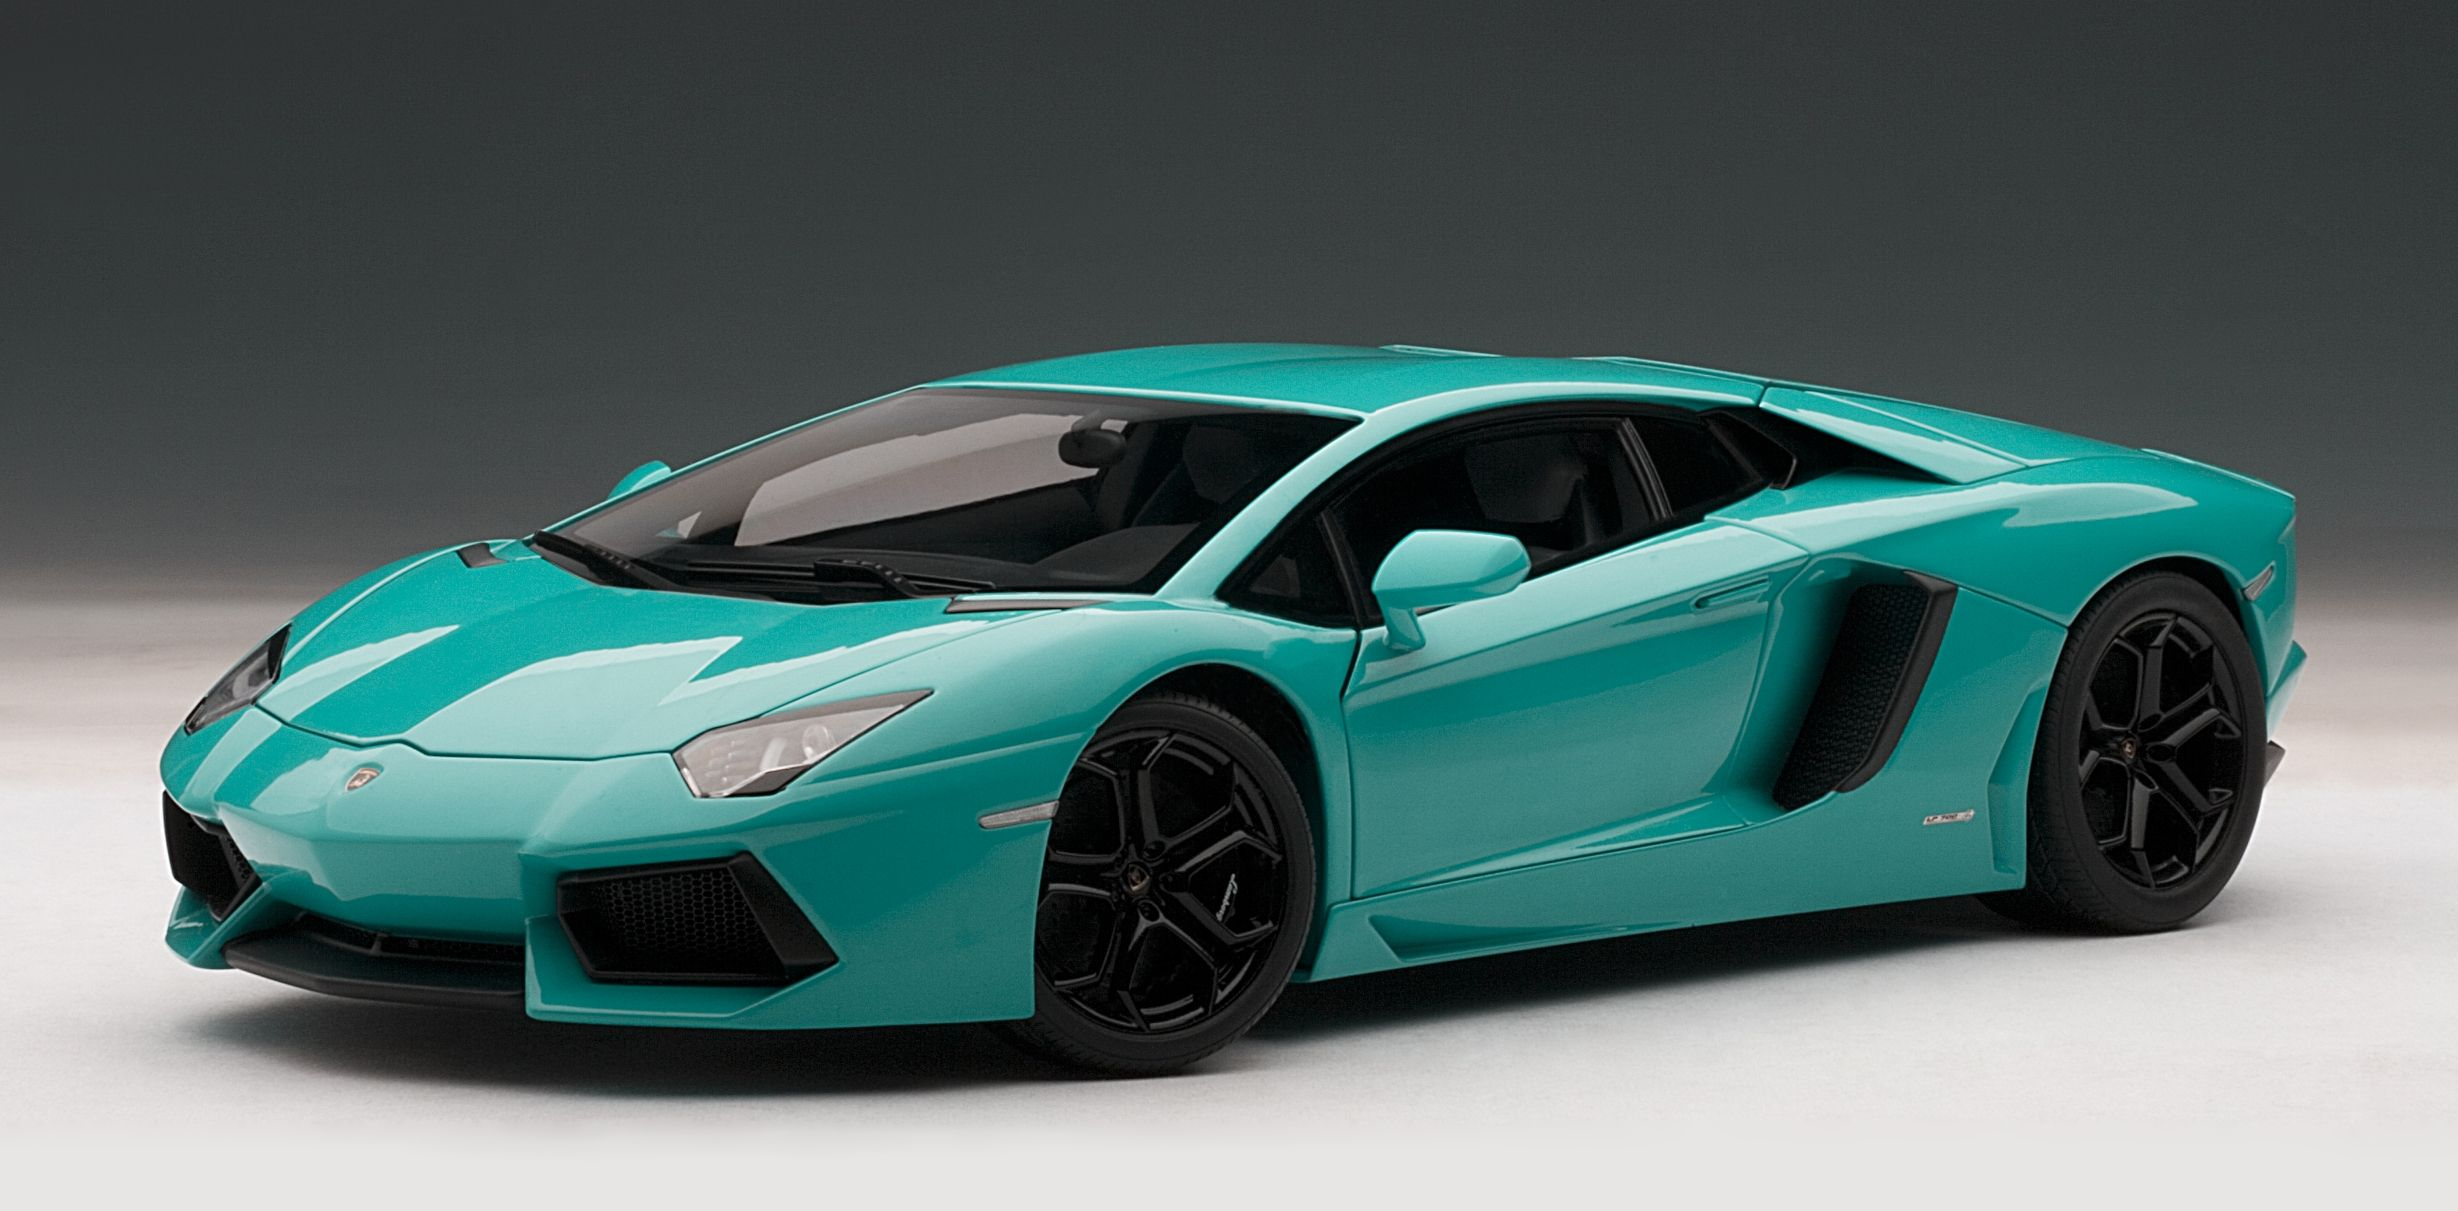 This Lamborghini Aventadorcast Model Car Is Turquoise And Features Working Steering Suspension Wheels And Also Opening Bonnet Boot With Engine